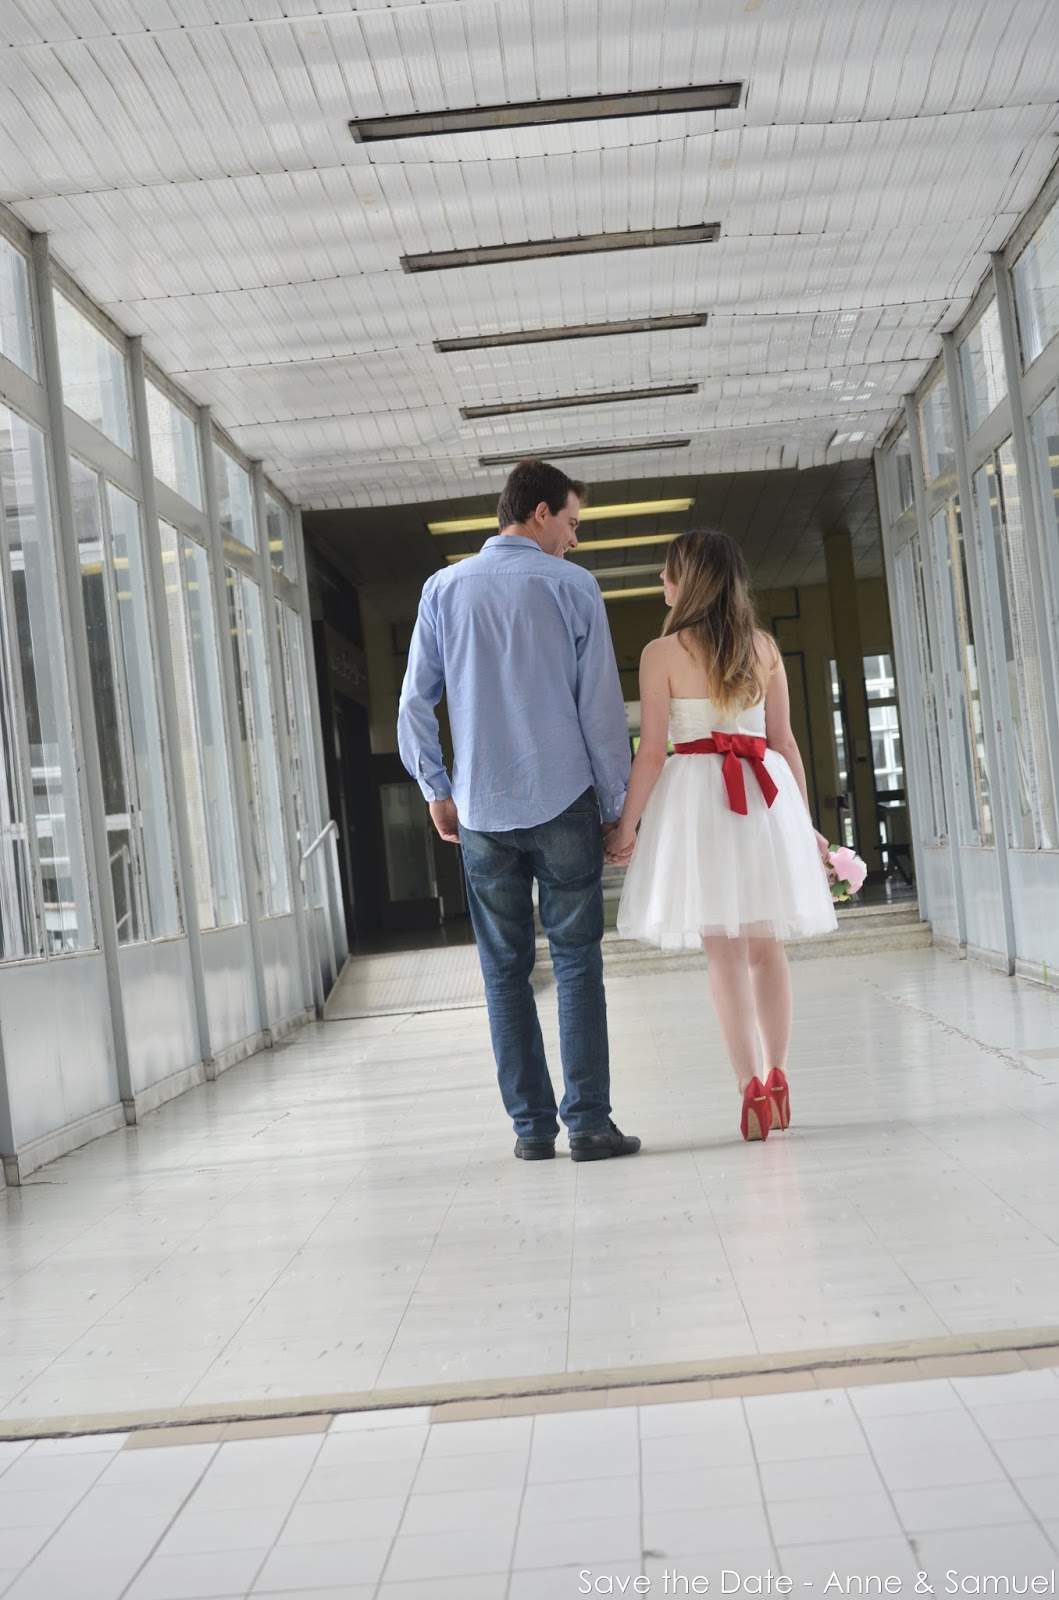 e-session-save-the-date-maos-dadas